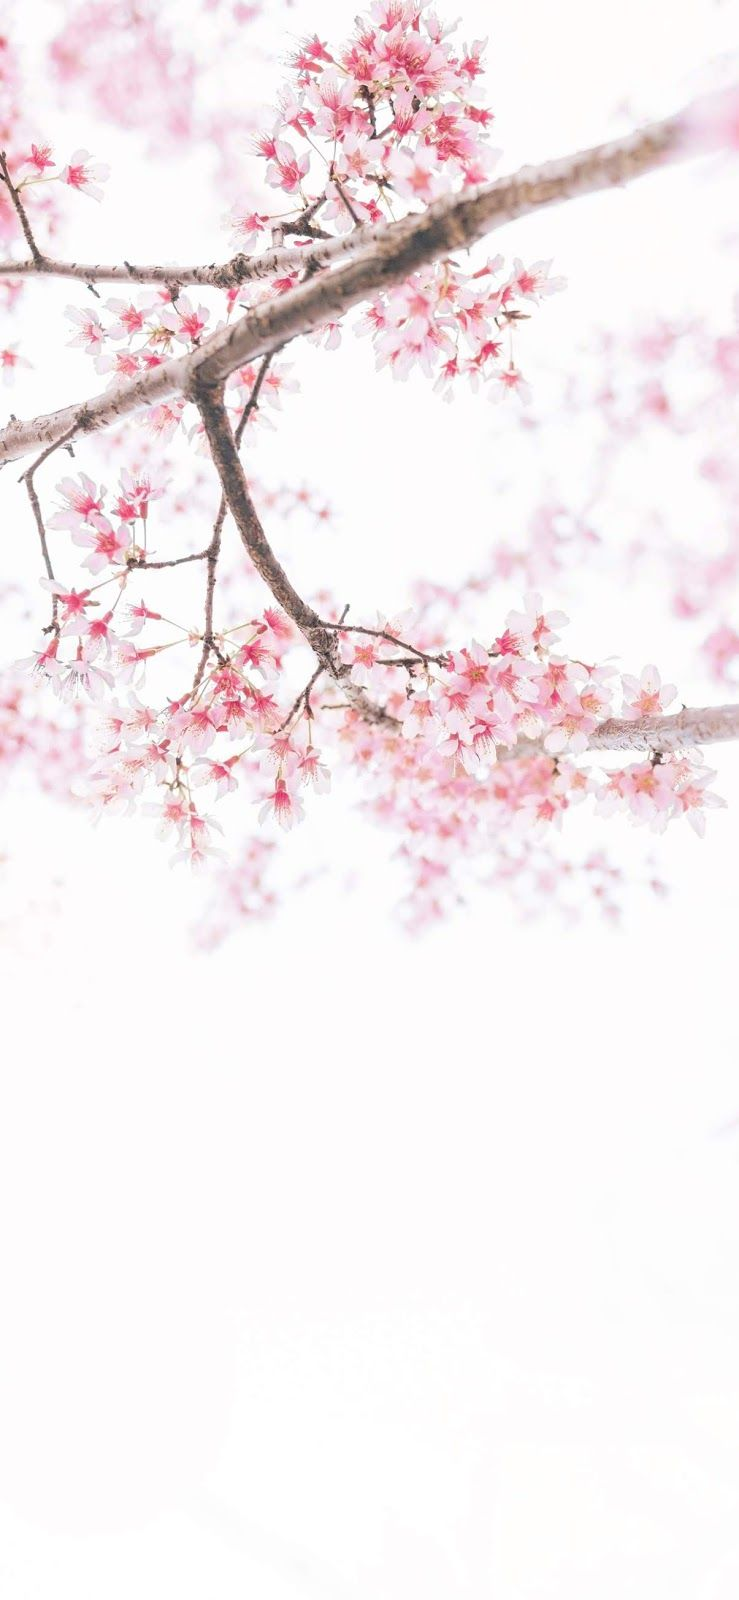 Cherry Blossom Wallpaper Iphone Xs Max Cherry Blossom